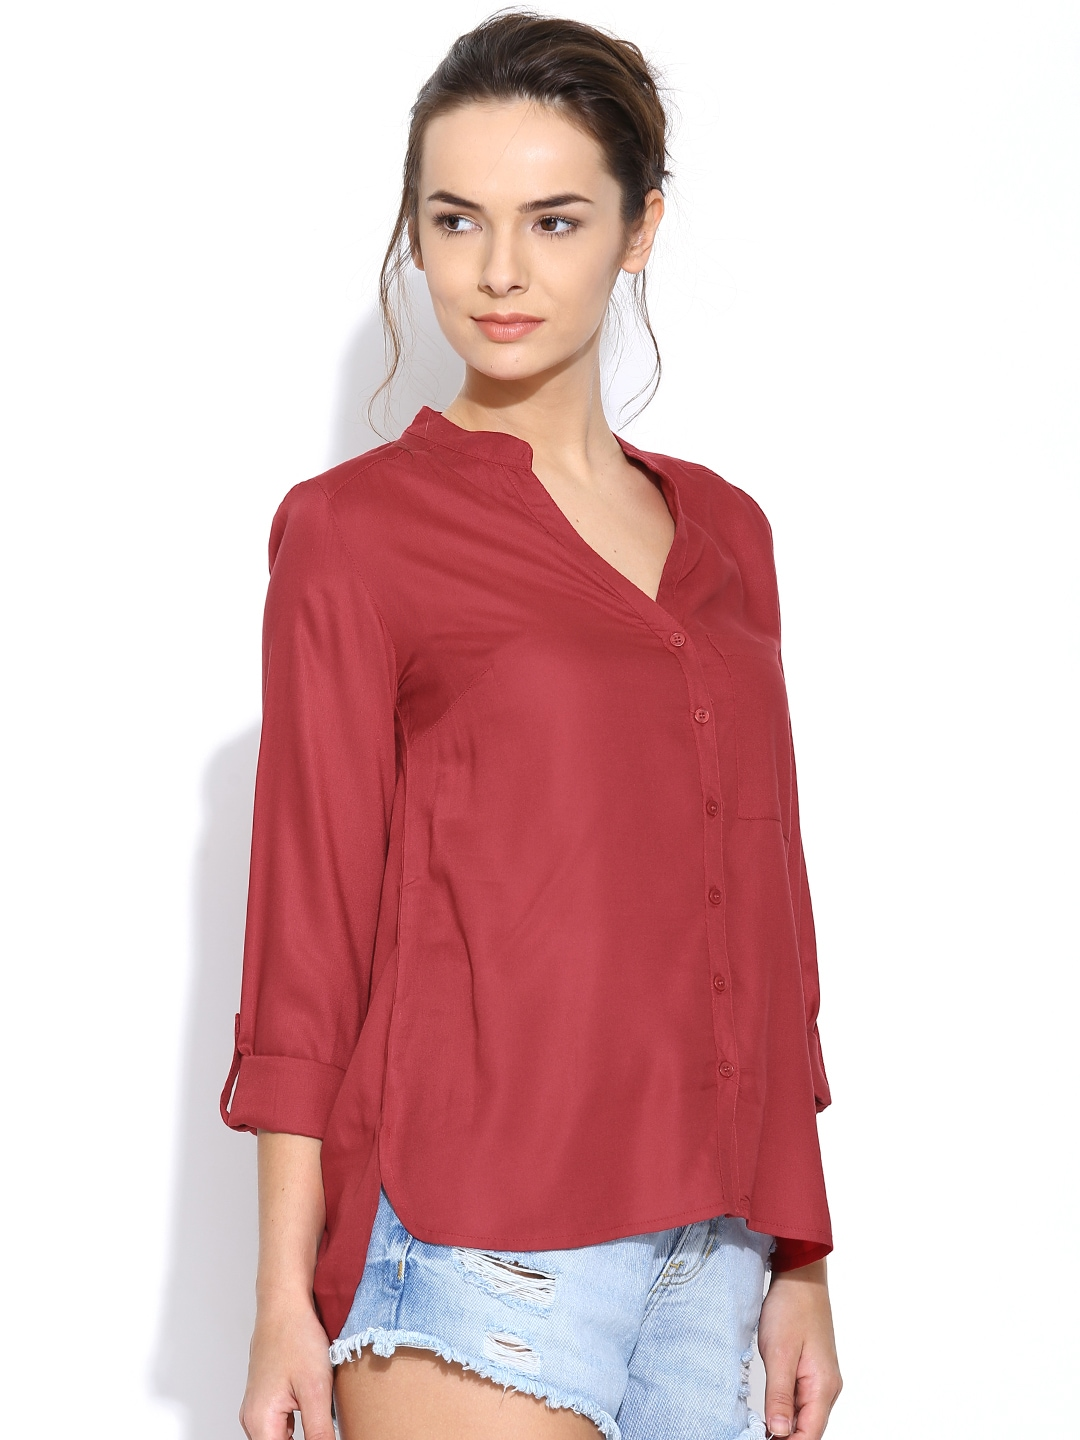 Myntra silly people women maroon shirt 787681 buy myntra for Shirts online shopping lowest price